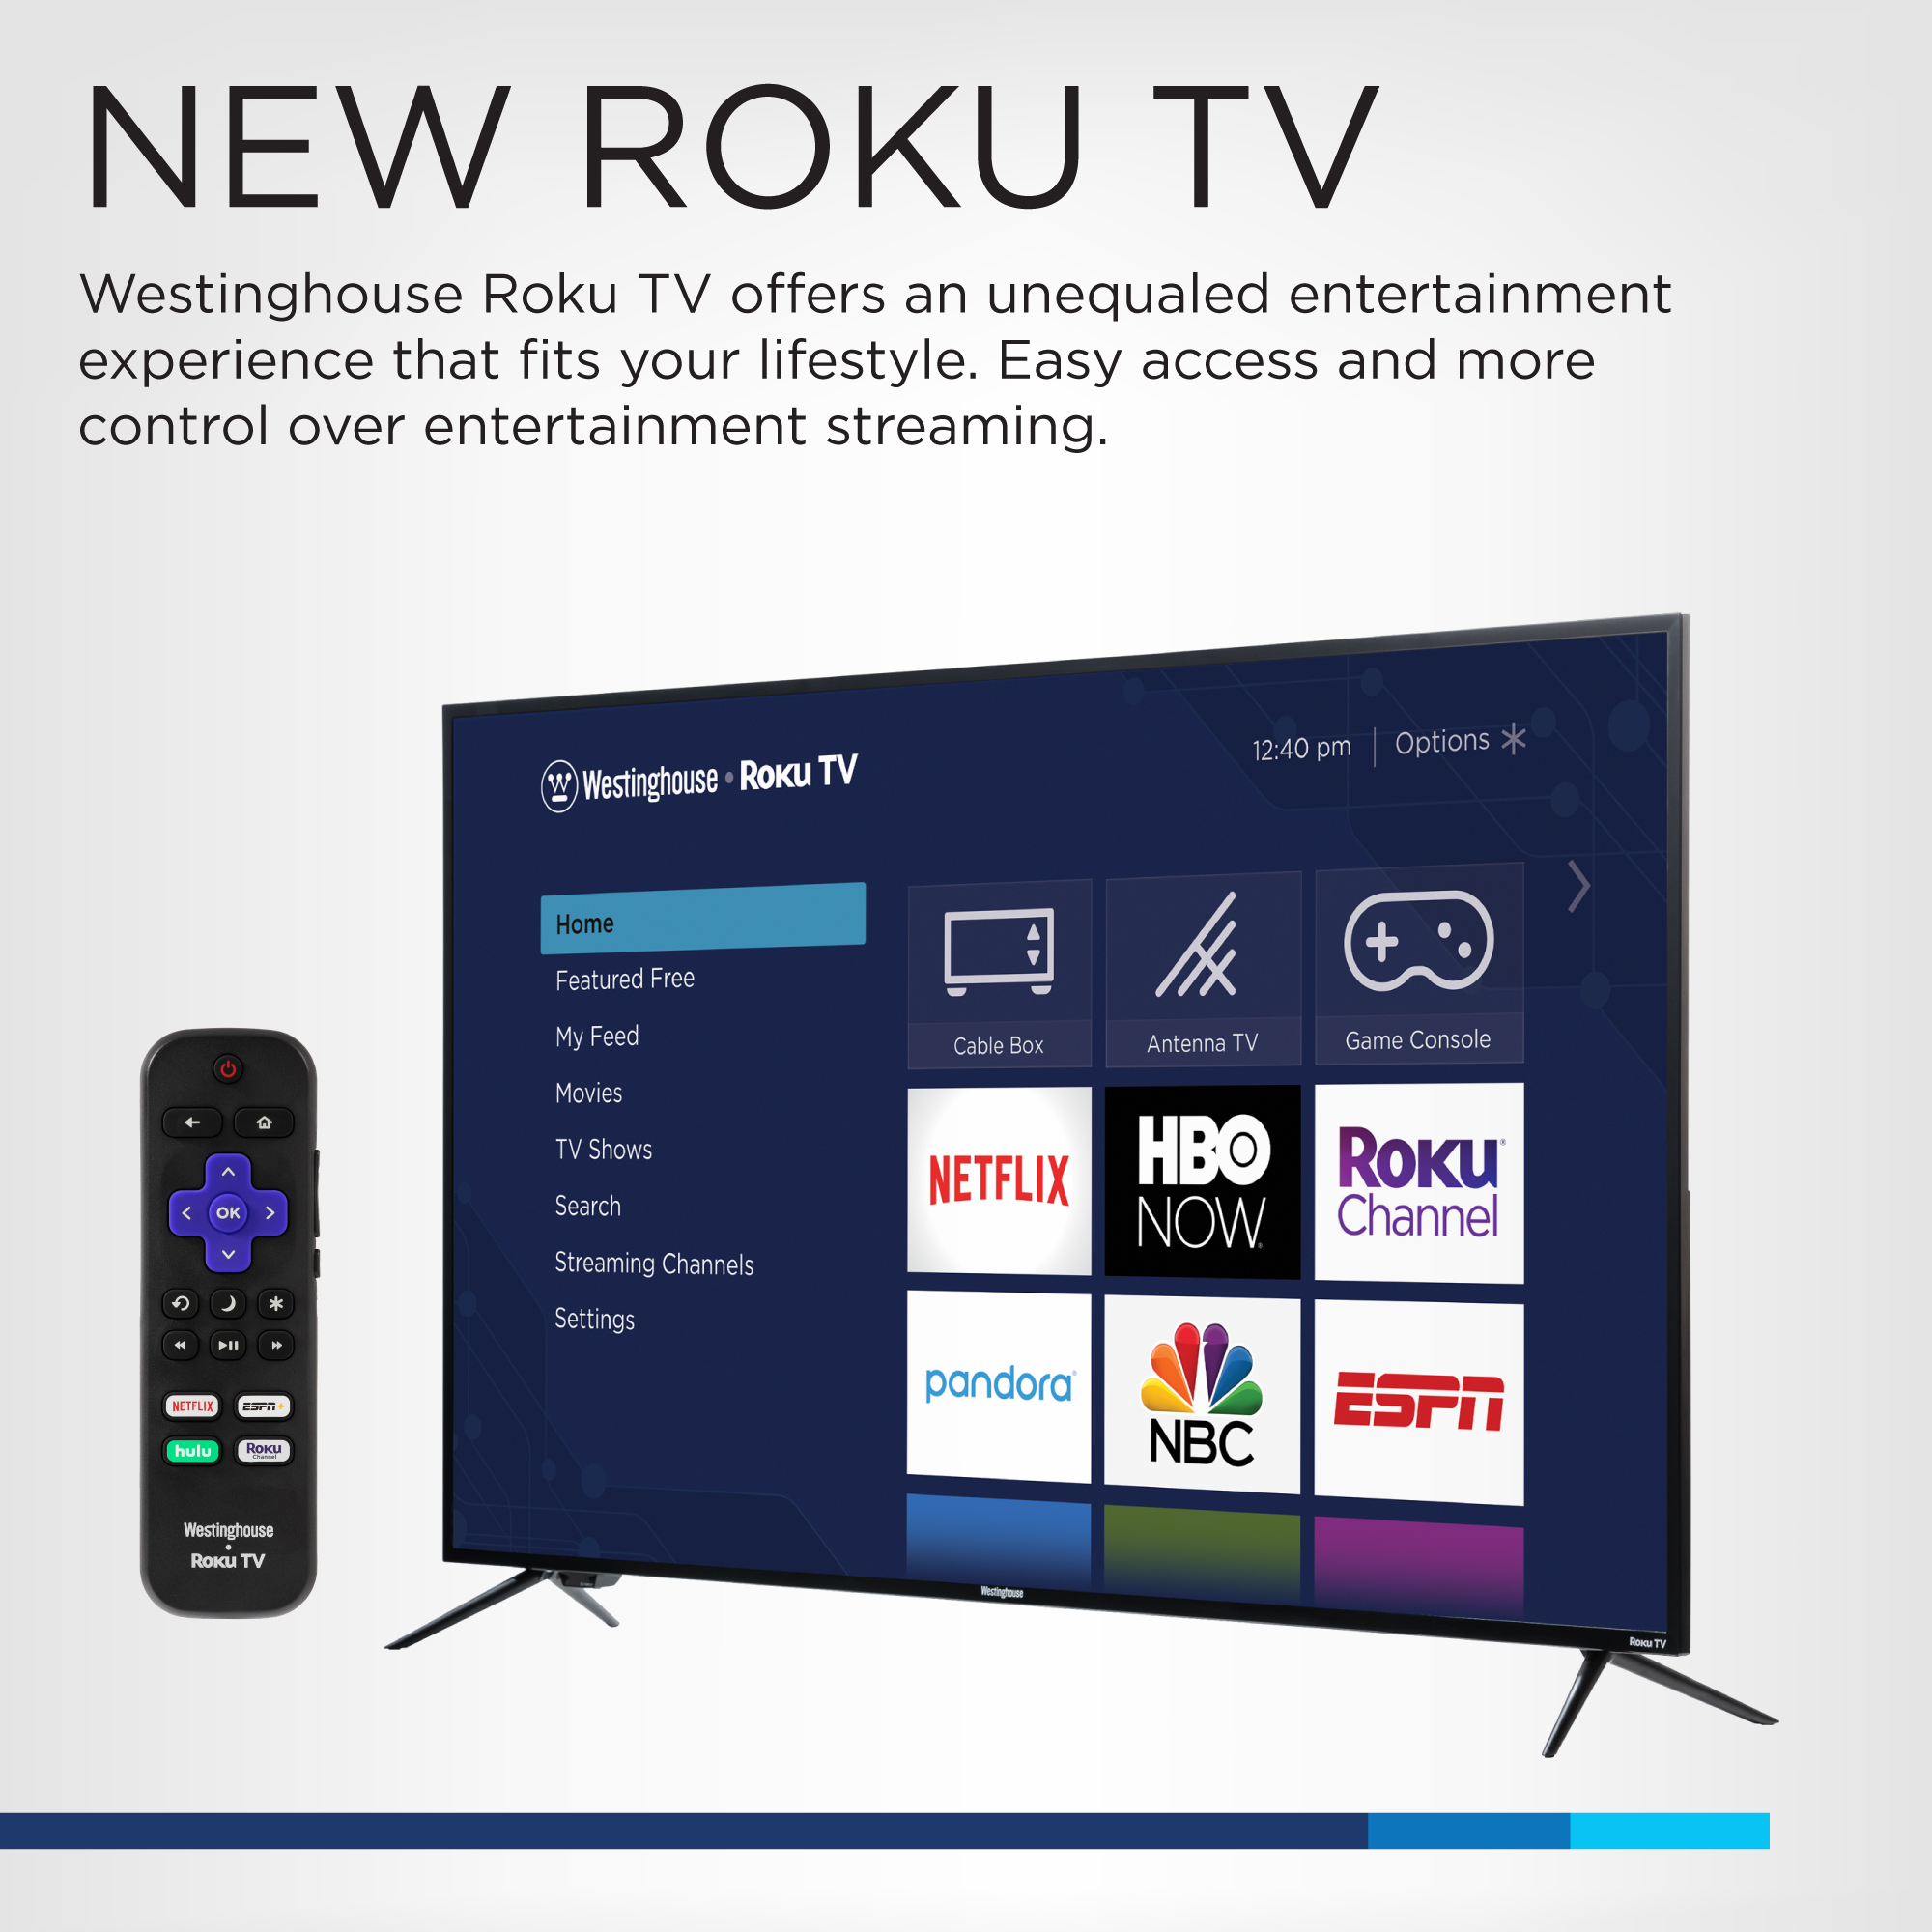 New Westinghouse Roku TV. Westinghouse Roku TV offers an unequaled entertainment experience that fits your lifestyle. Easy Access and More Control Over Entertainment Streaming.